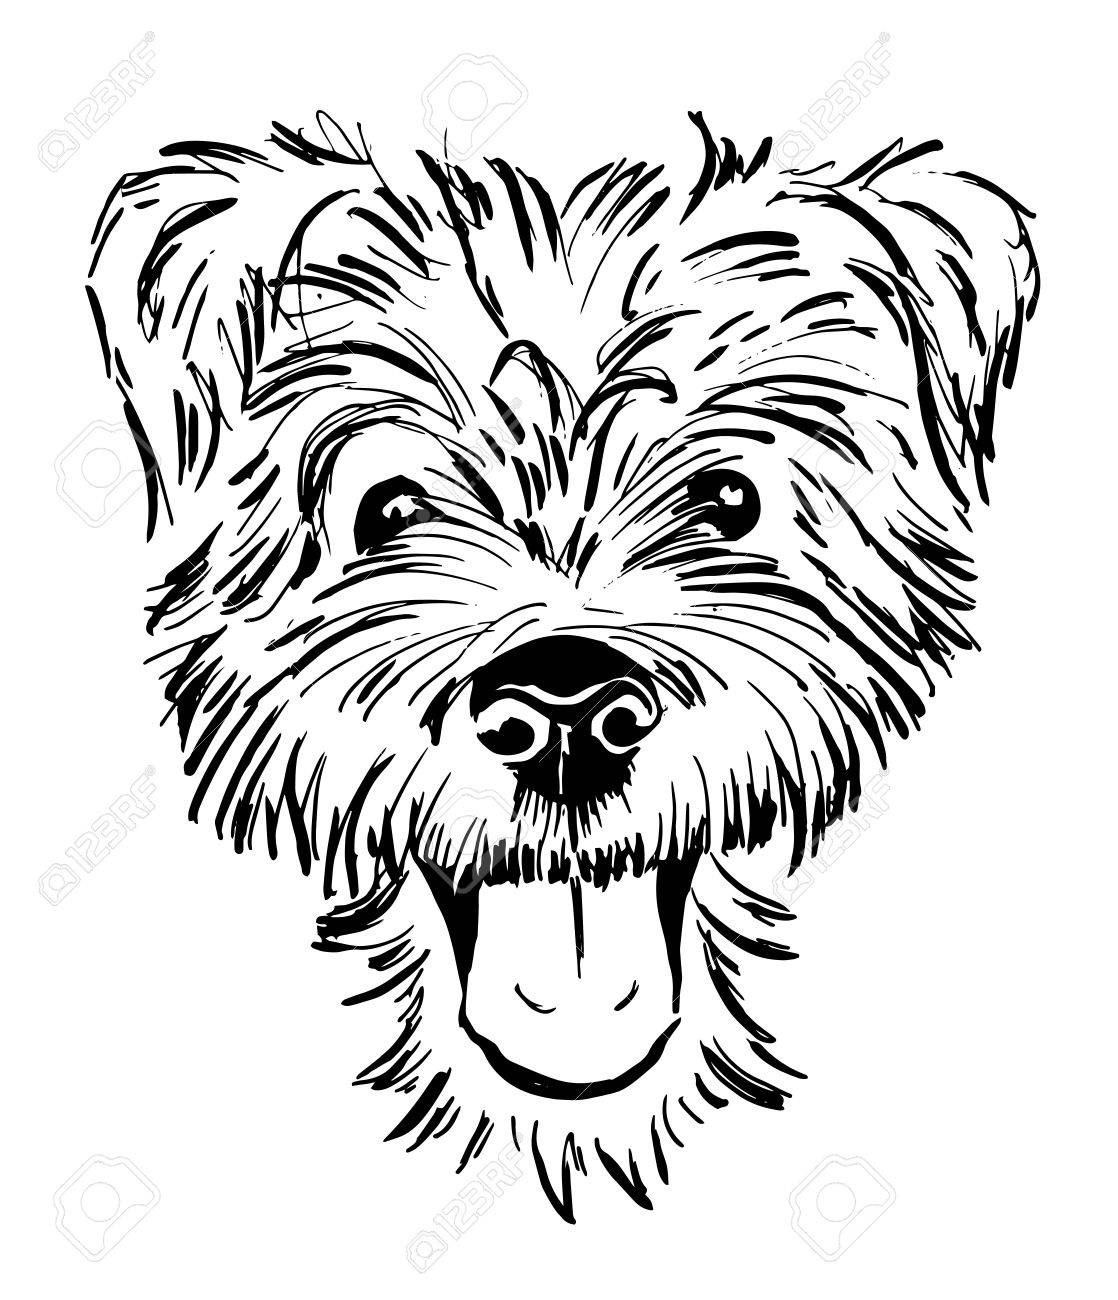 Dog breed terrier smiling dog face portrait sketch black and white vector